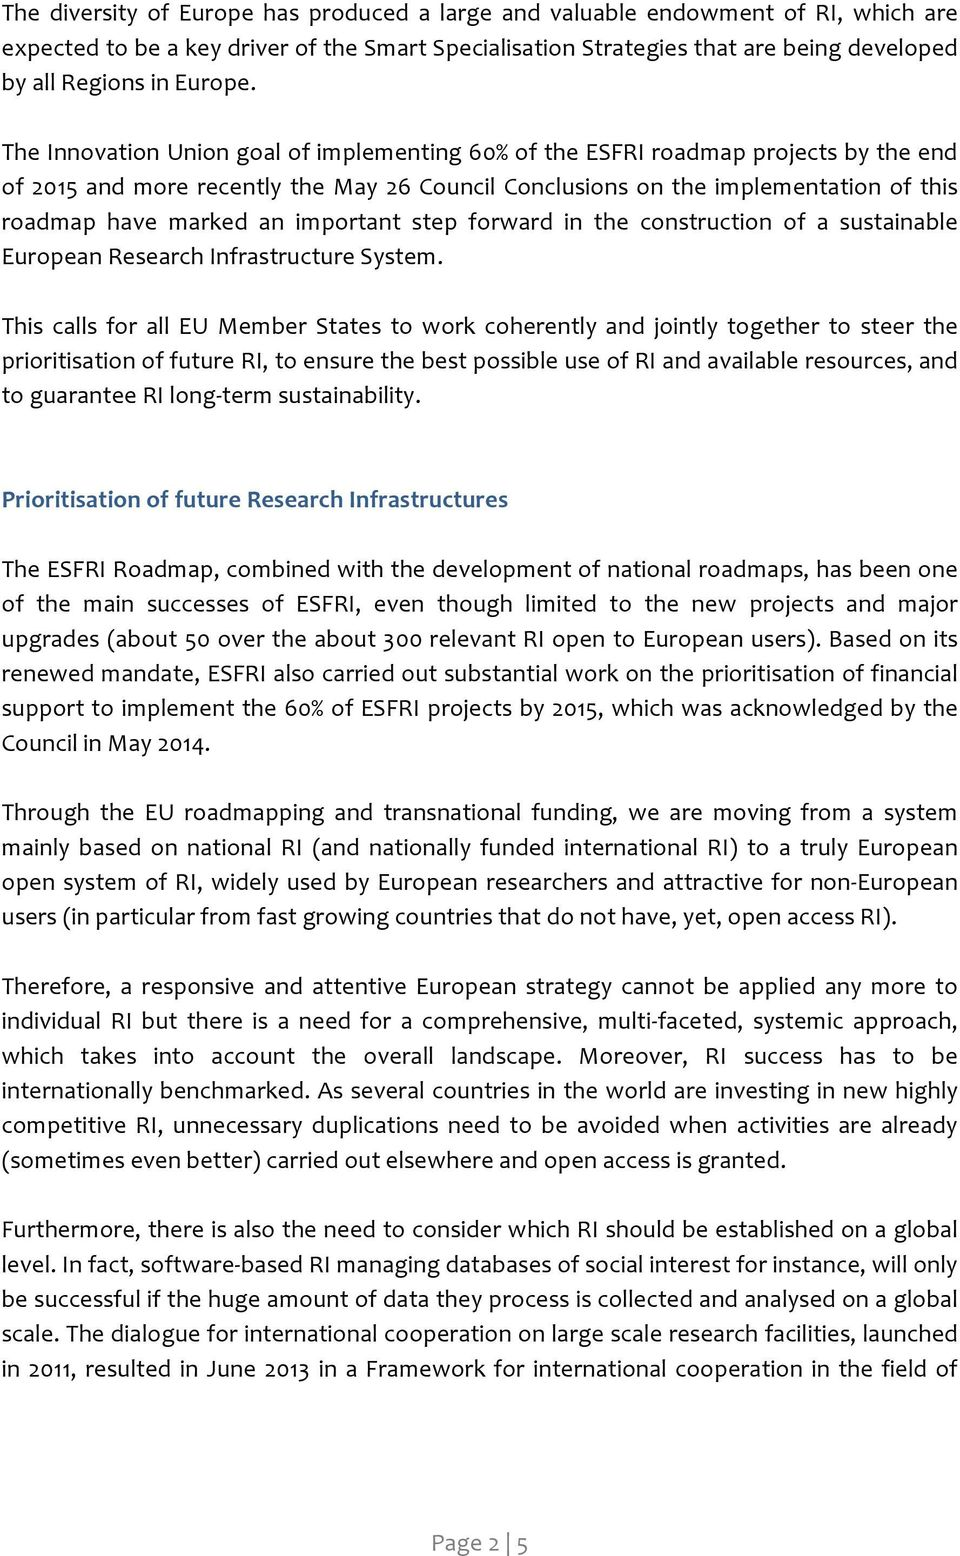 The Innovation Union goal of implementing 60% of the ESFRI roadmap projects by the end of 2015 and more recently the May 26 Council Conclusions on the implementation of this roadmap have marked an